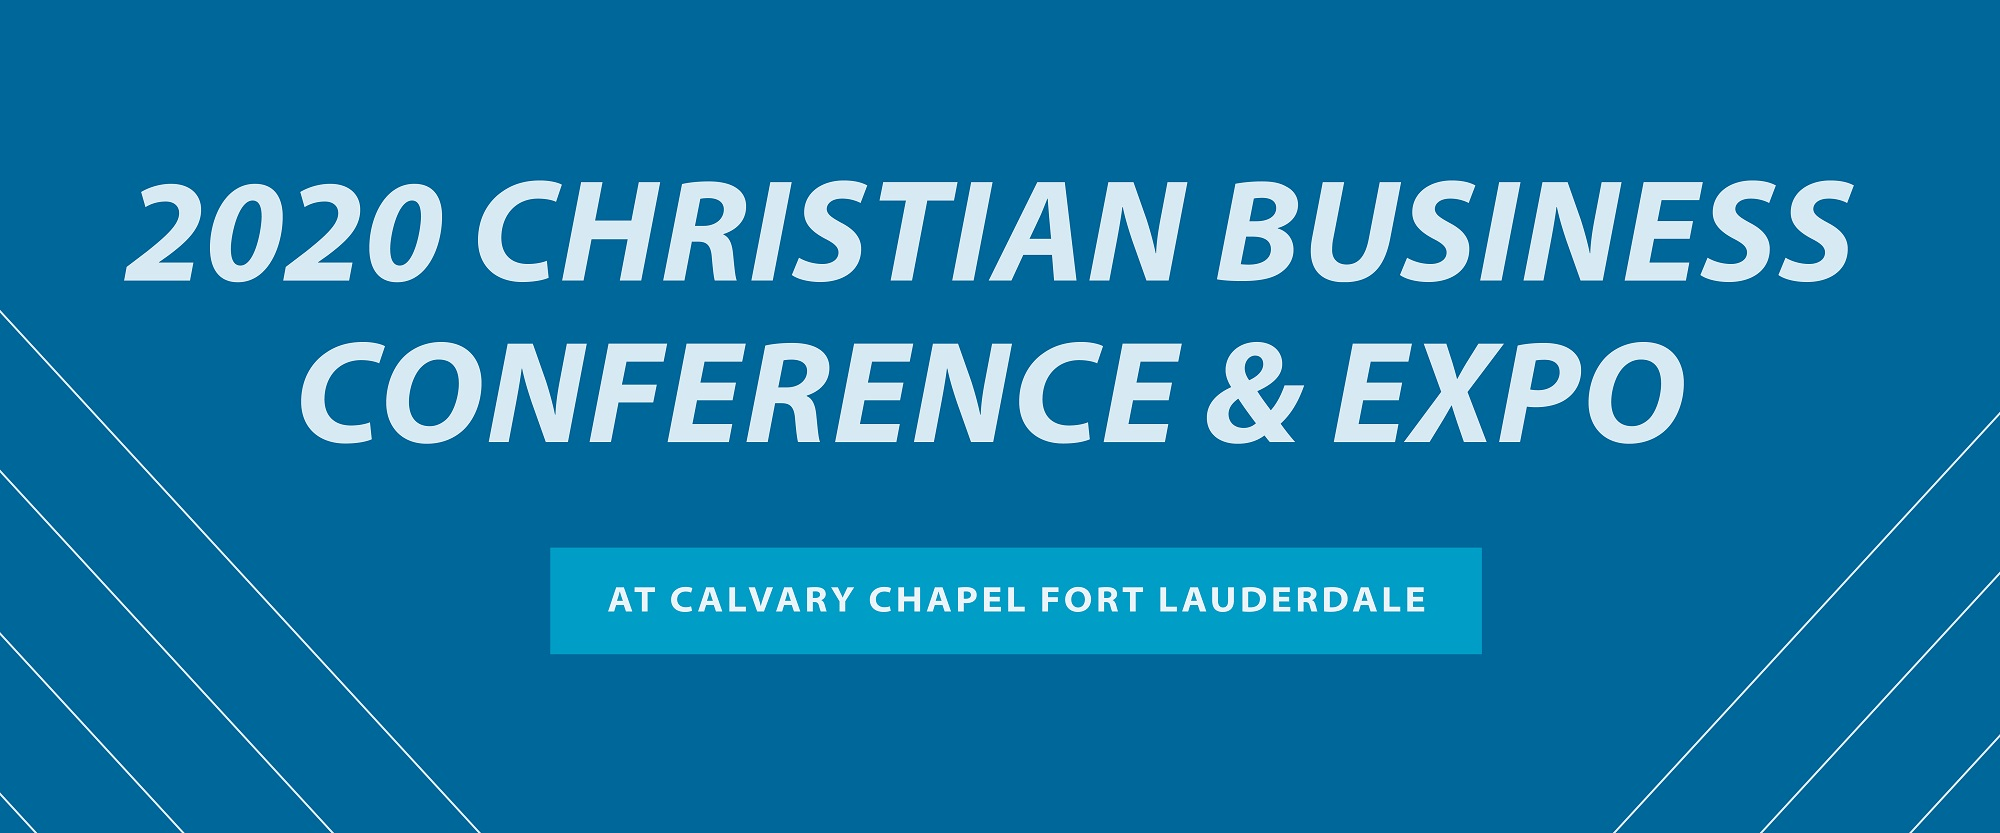 Ft Lauderdale Events January 2020.2020 Christian Business Conference Expo Calvary Chapel